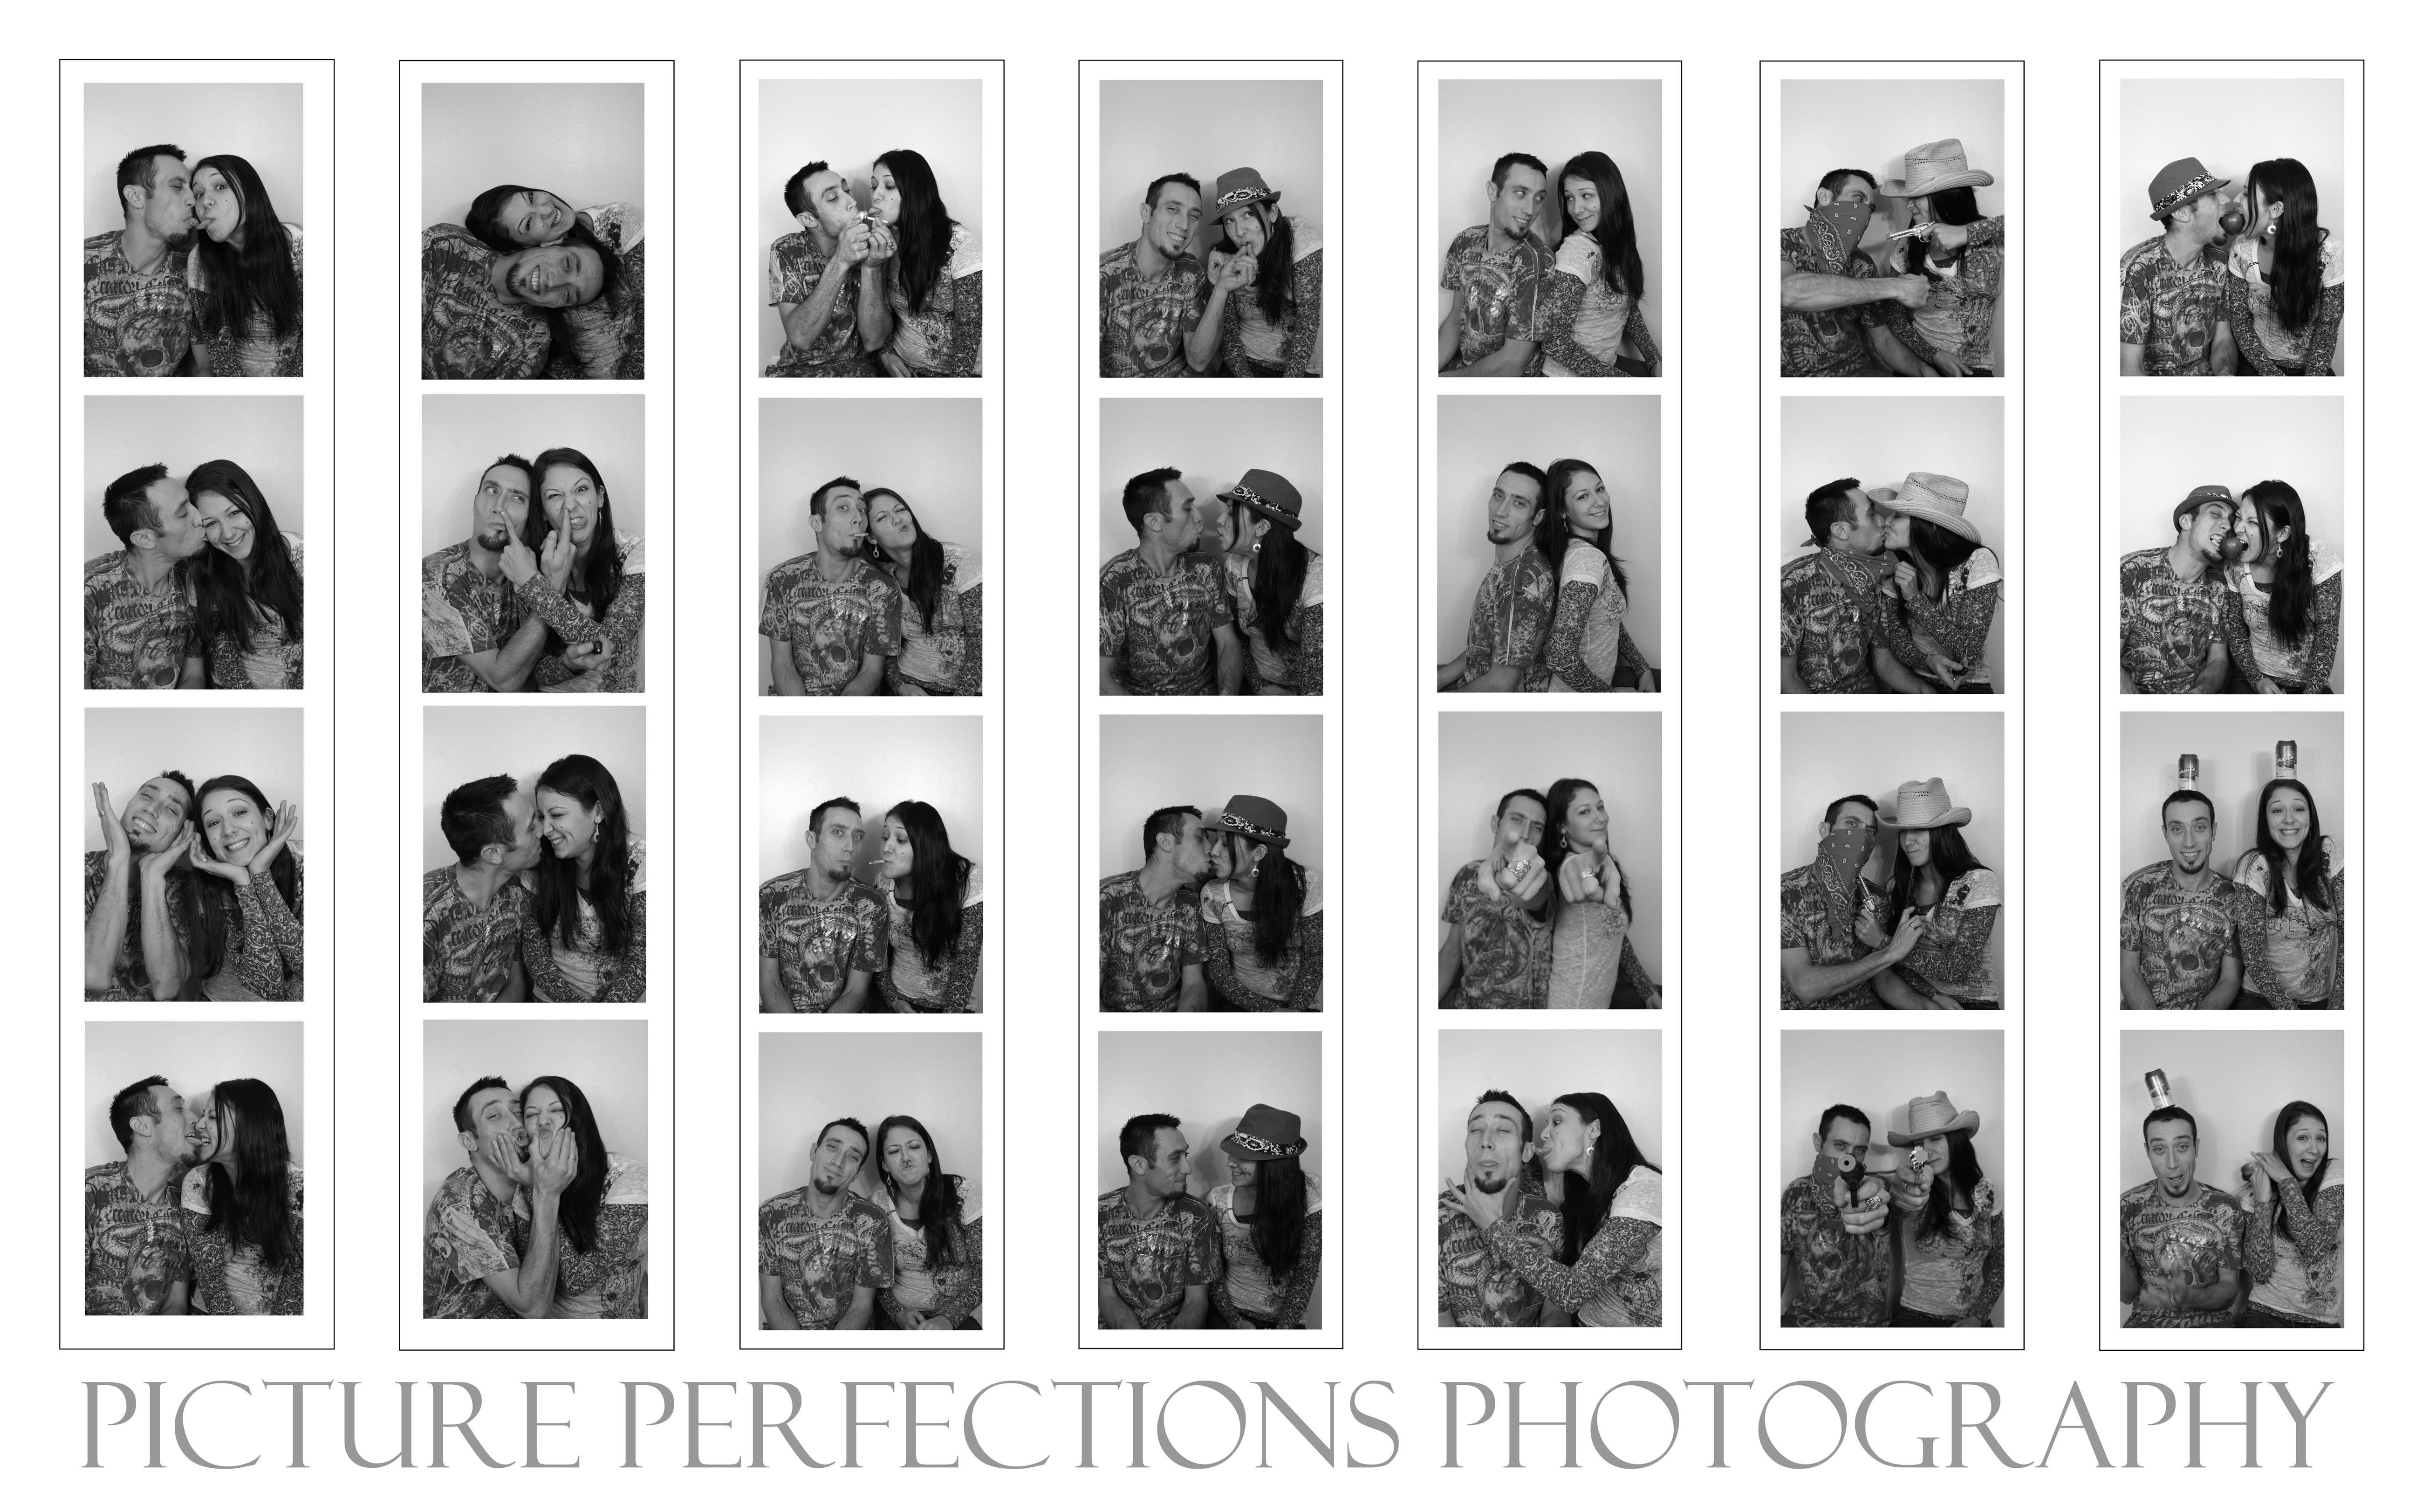 Photo Booth Fun Couple Pictures Silly Poses Partners In -5768